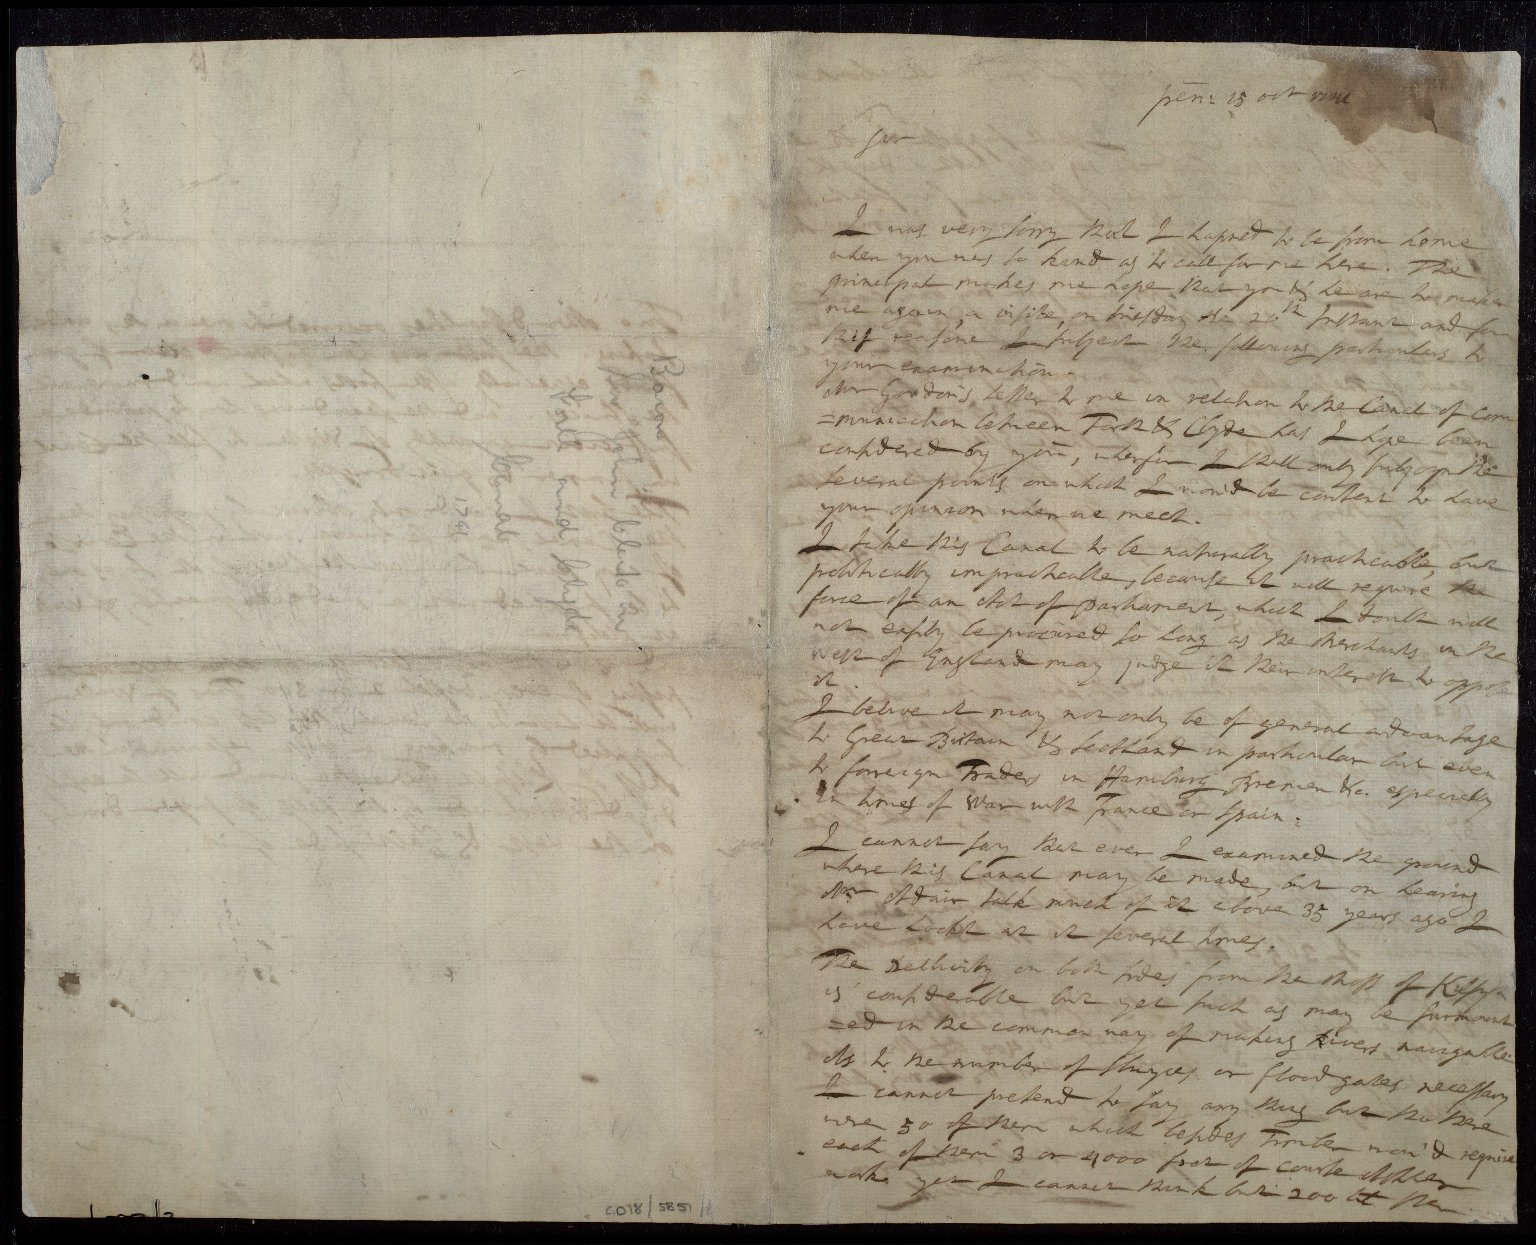 [Copy letter from Sir John Clerk to William Adam? concerning the Forth-Clyde canal project, [1 of 2]